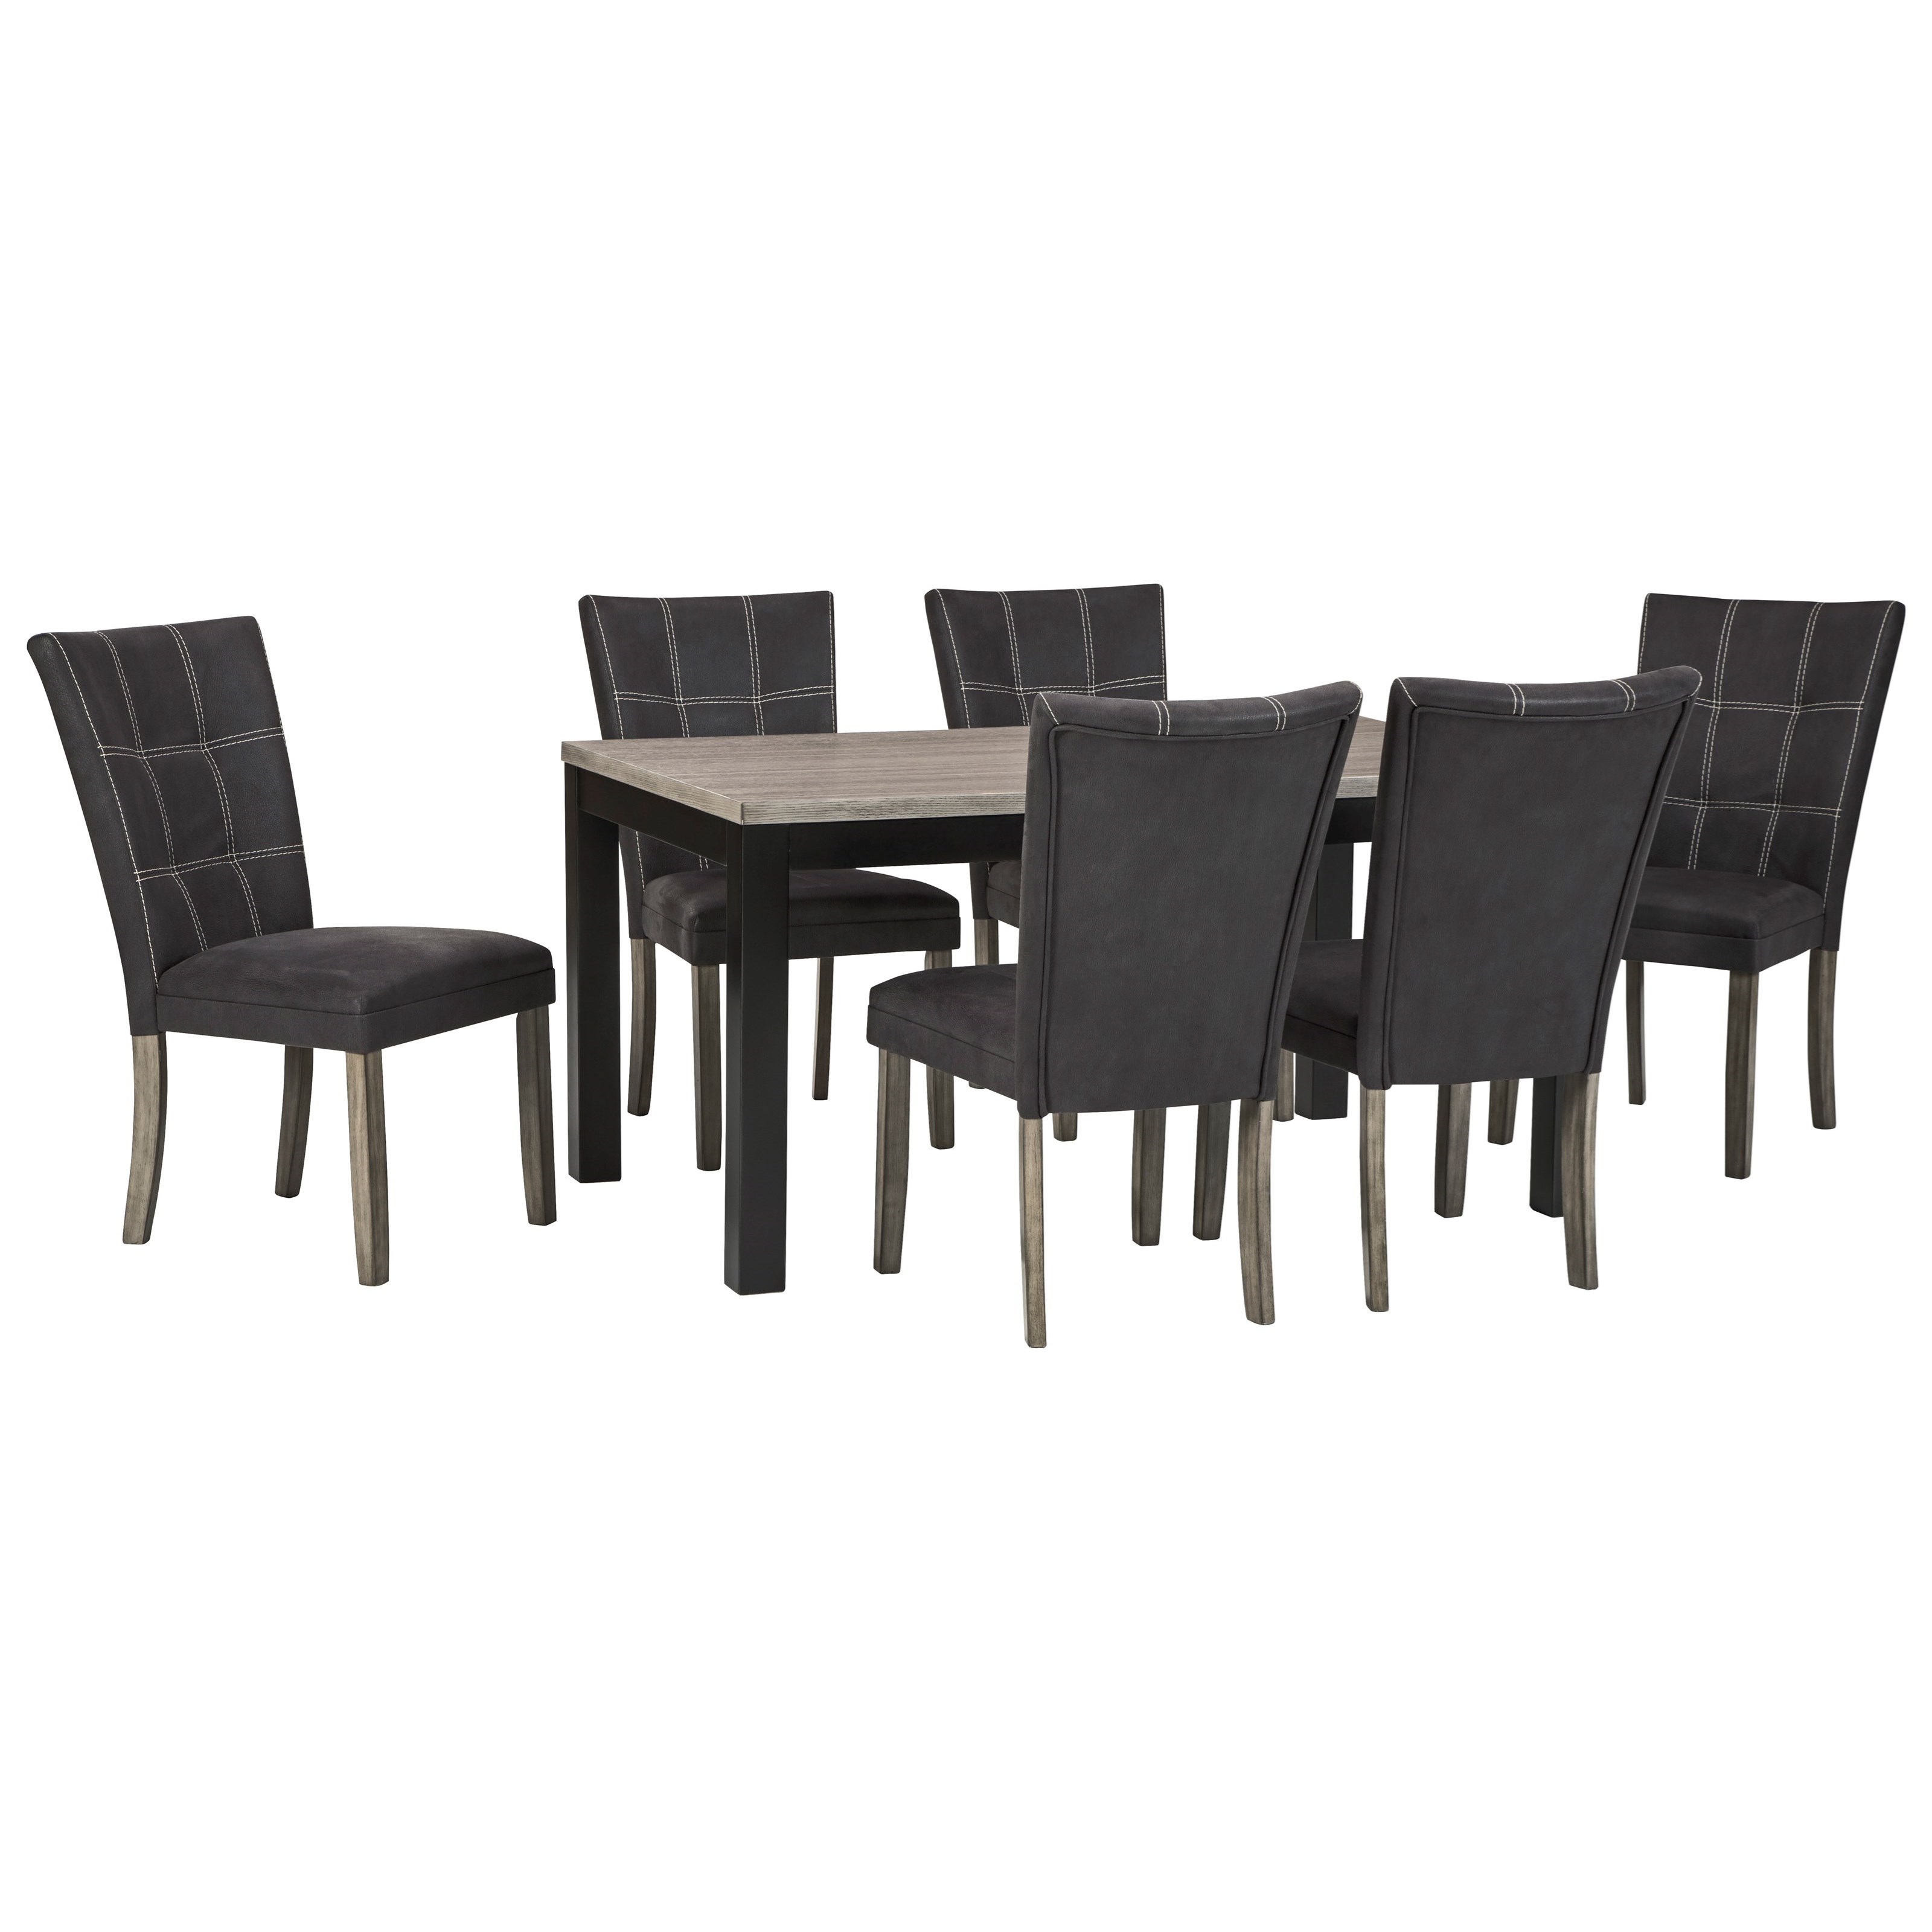 Dontally 7-Piece Rectangular Dining Table Set by Benchcraft at Walker's Furniture